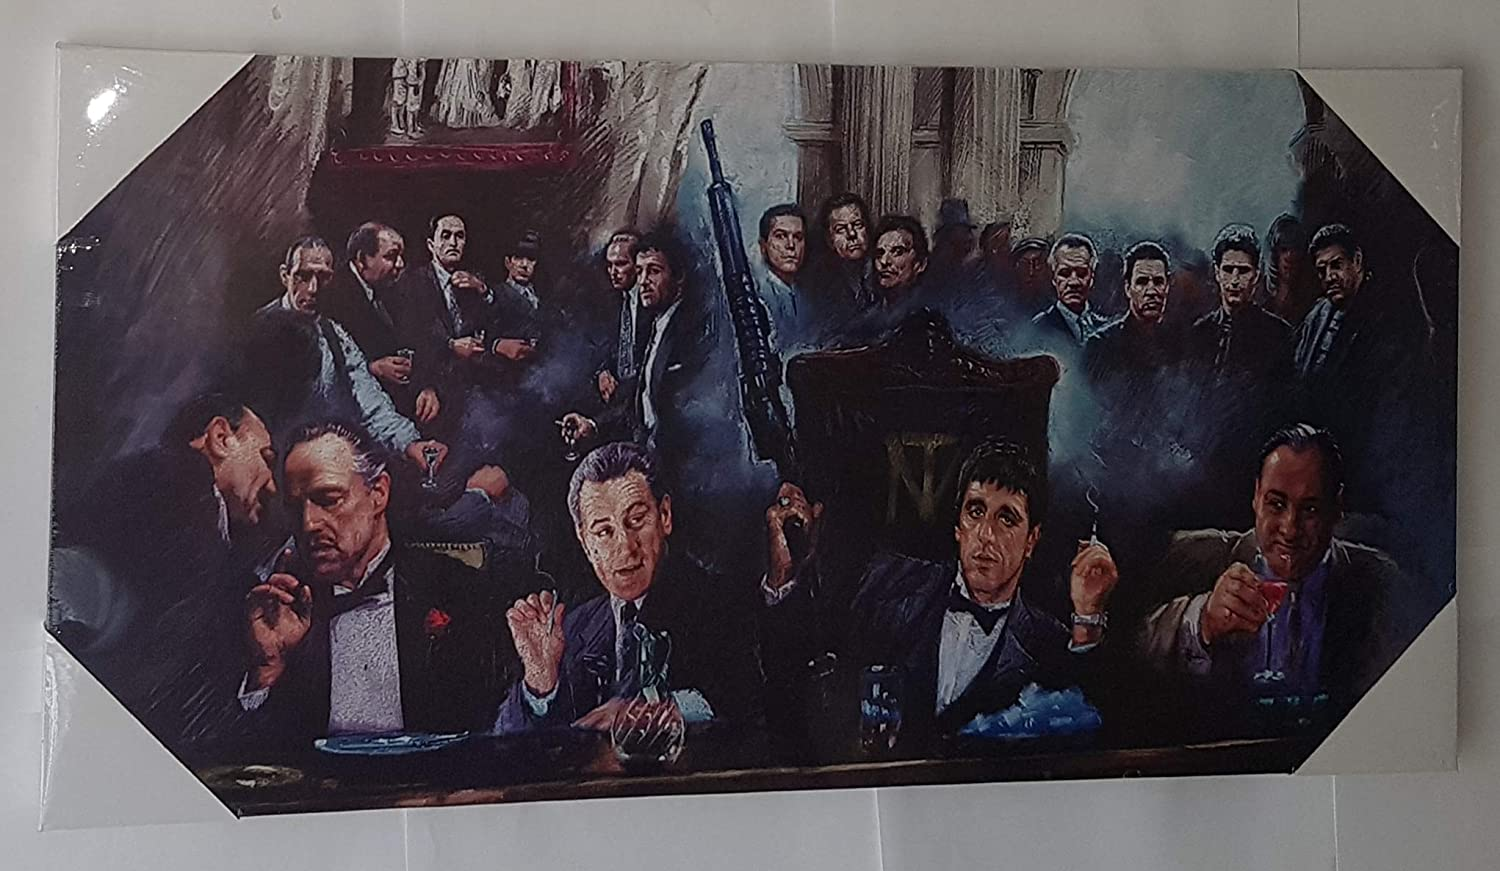 Amazon.de: TV Gangster Chillin Scarface Goodfellas Godfather ...